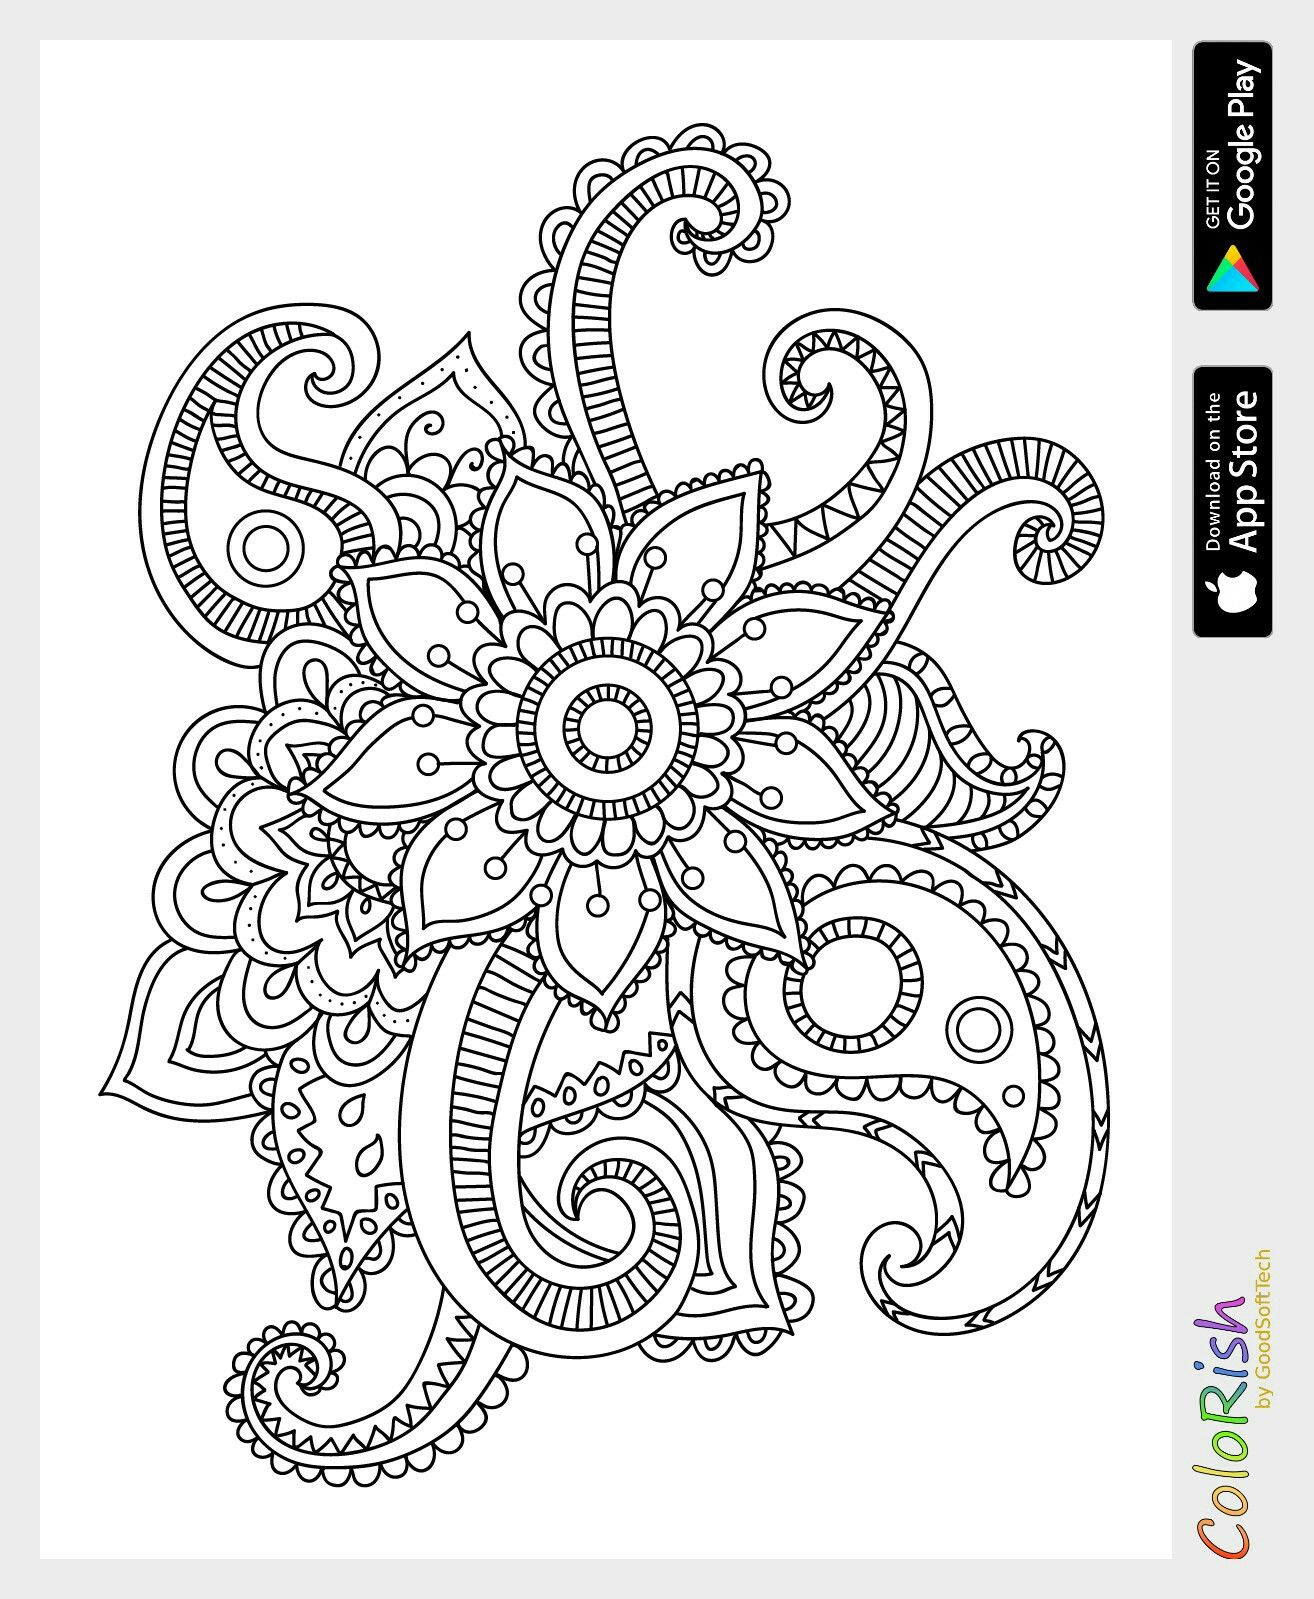 Pin By Lina Lopera On Colouring Pages Paisley Color Pattern Coloring Pages Pattern Art